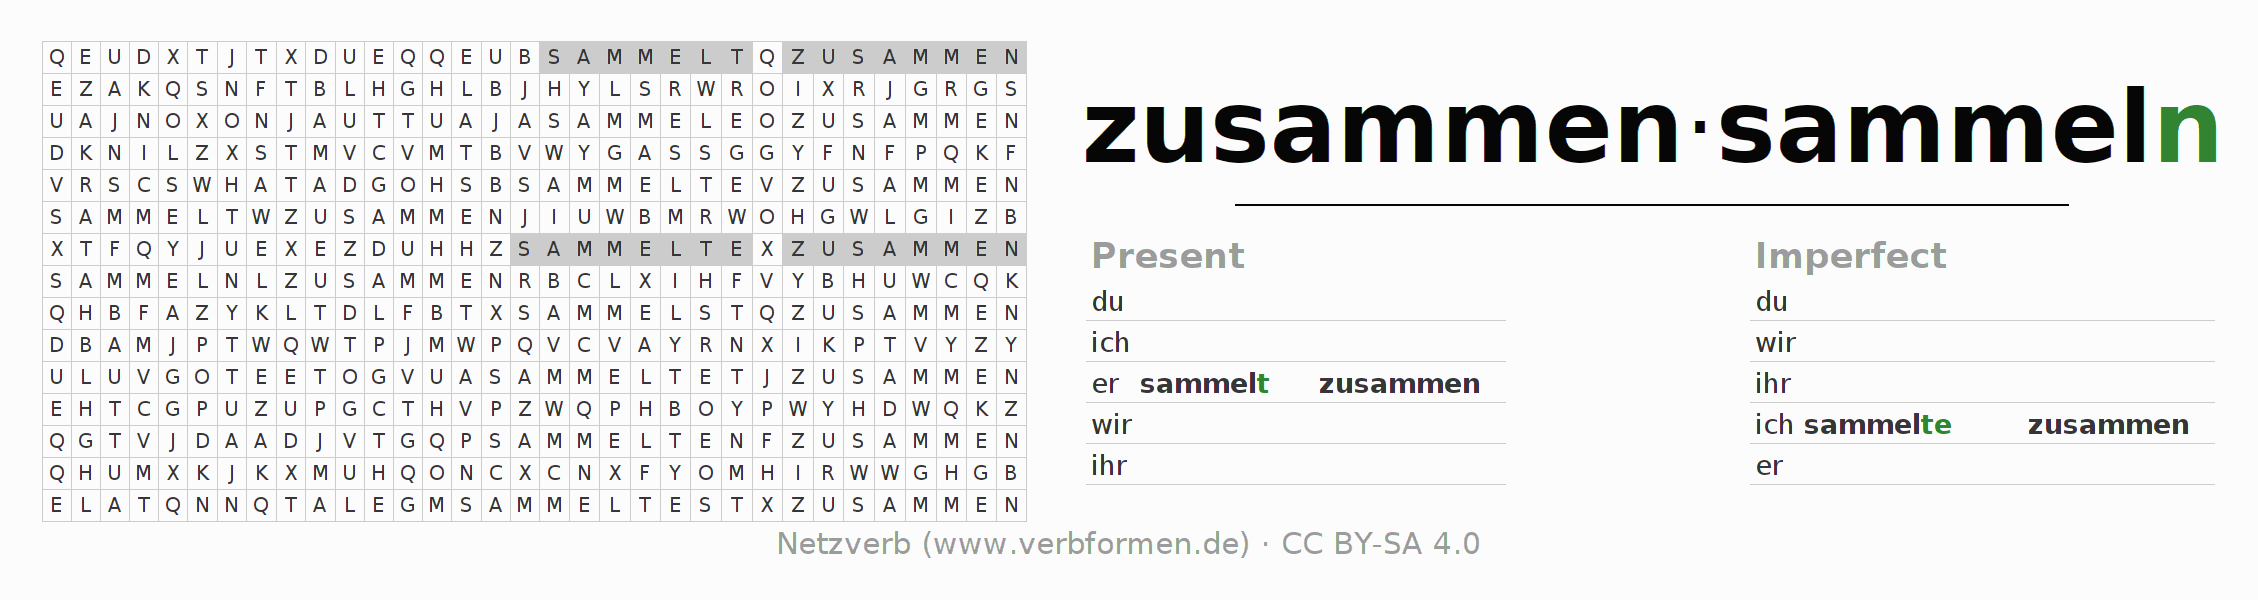 Word search puzzle for the conjugation of the verb zusammensammeln